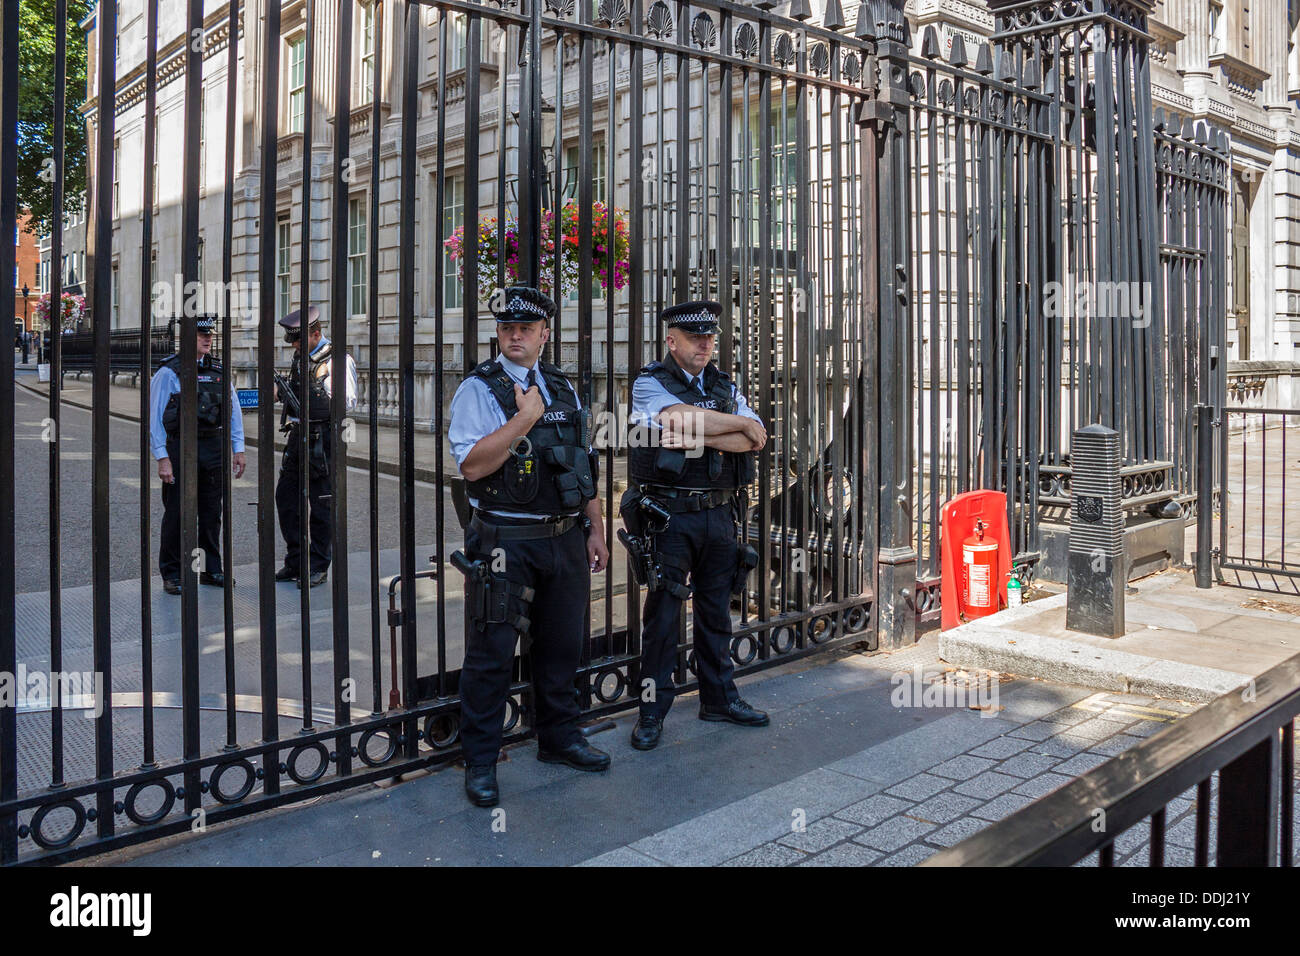 Downing Street Gates and armed police presence - Stock Image